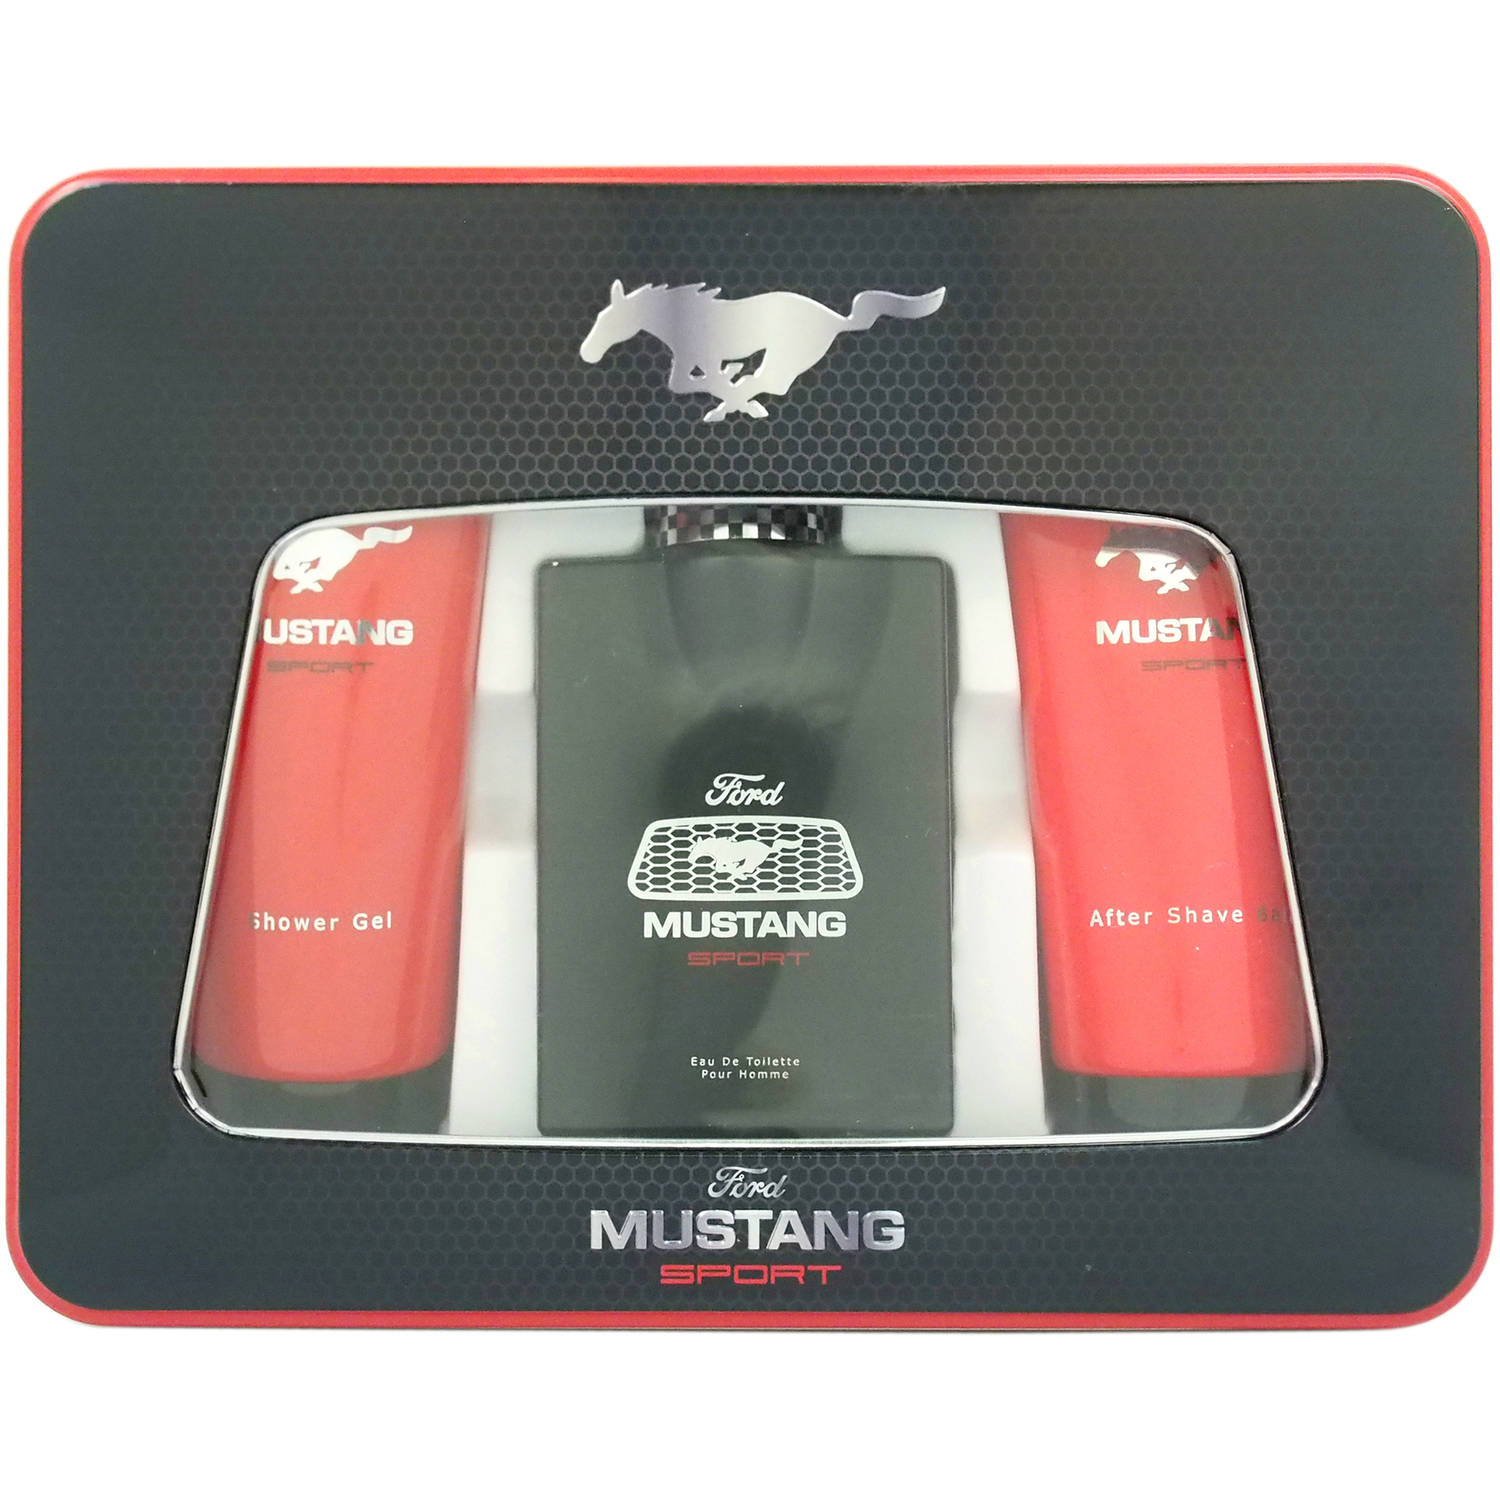 First American Brands Ford Mustang Sport Gift Set, 3 pc